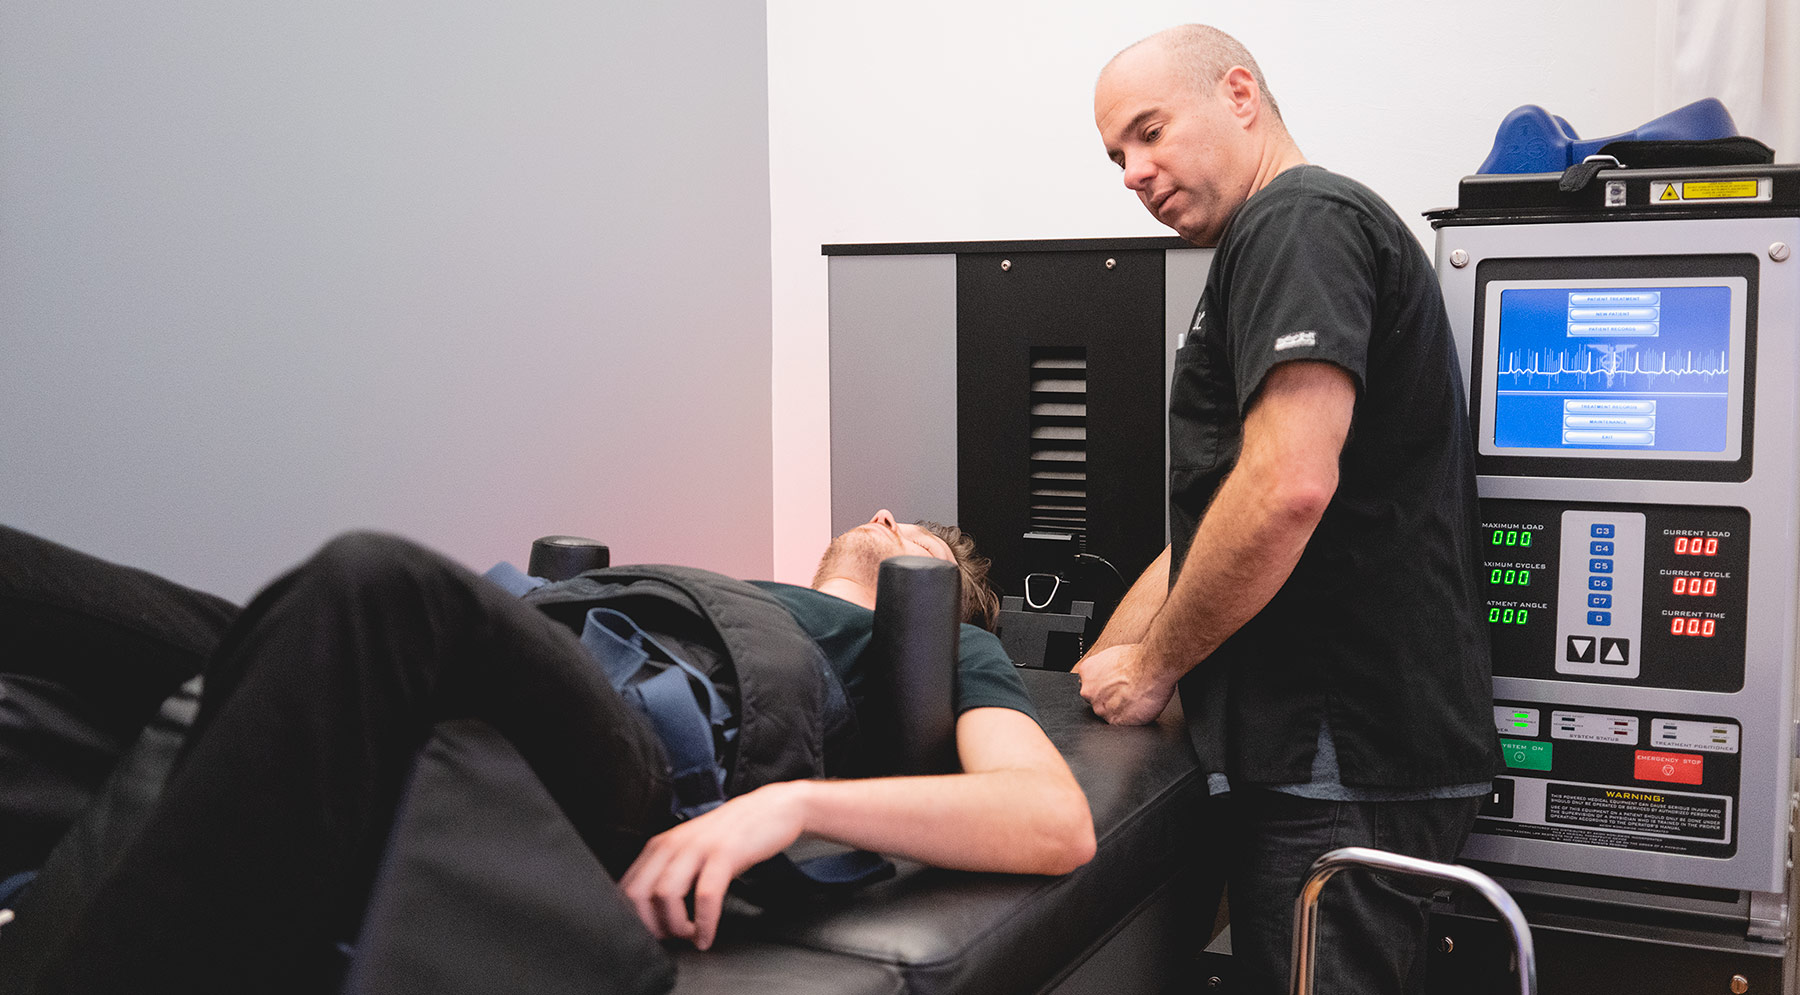 chiropractor treating patient with herniated discs using the drx9000 device